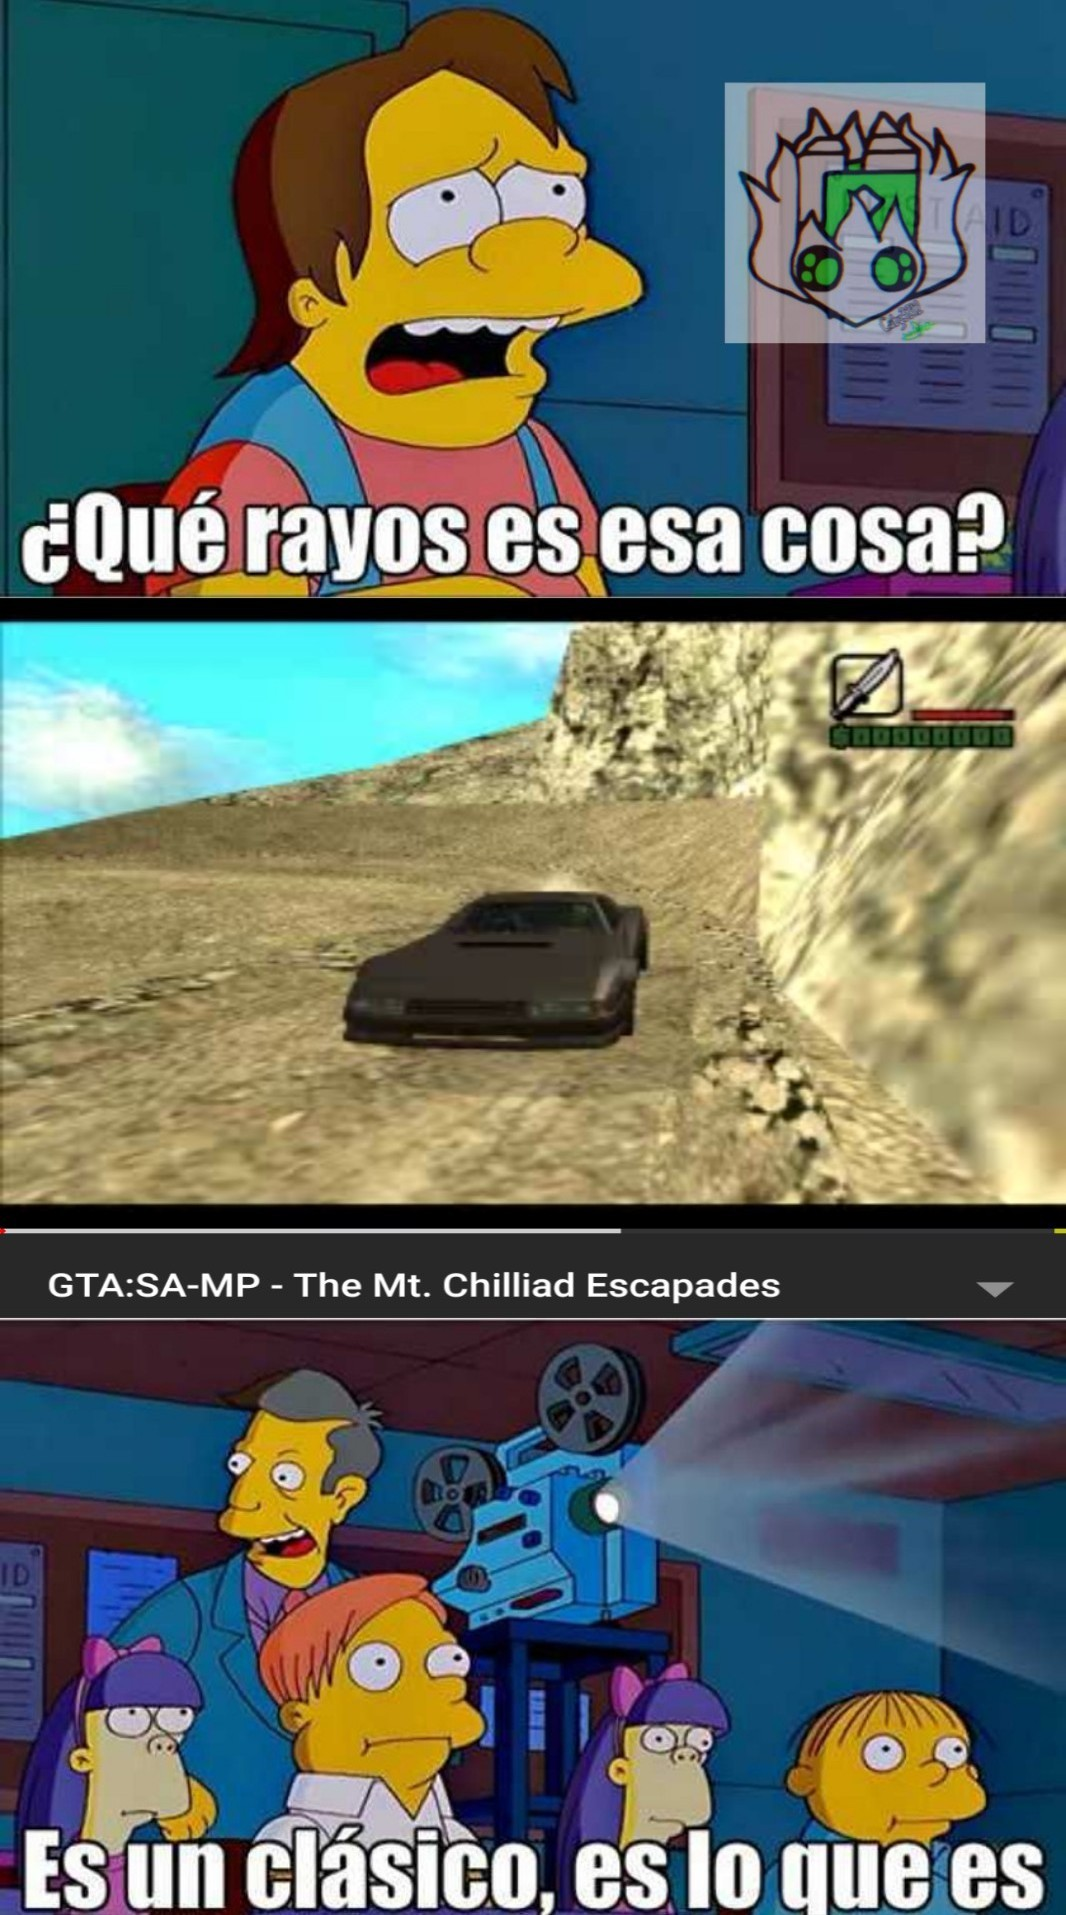 SOLO LOS OLDS DE YOUTUBE ENTENDERÁN - meme